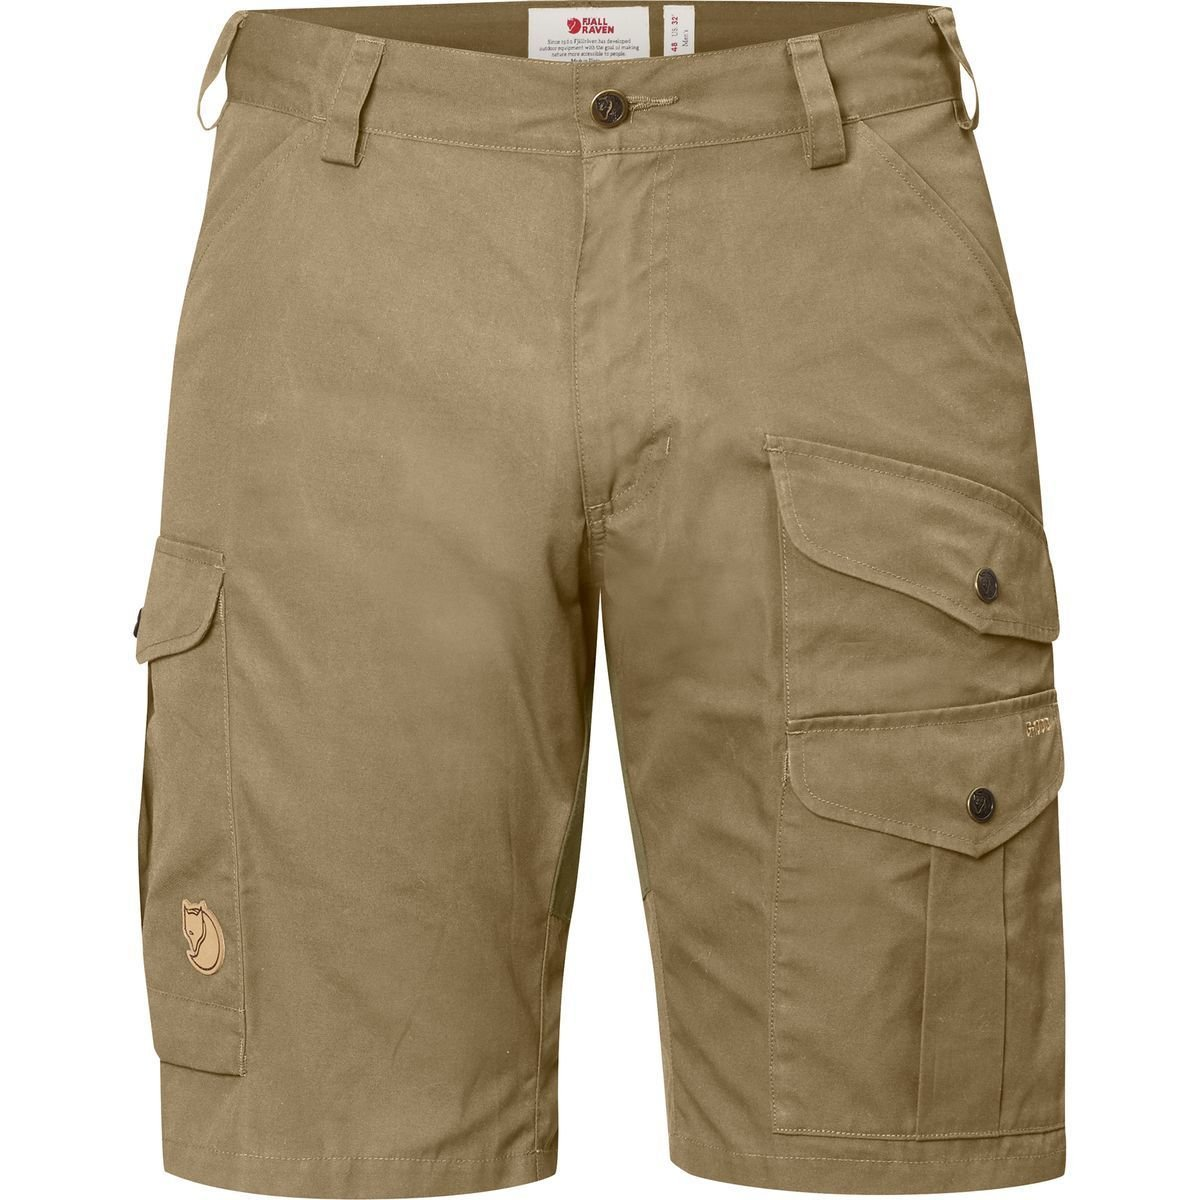 Fjallraven Barents Pro Short - Men's Sand / Taupe 50